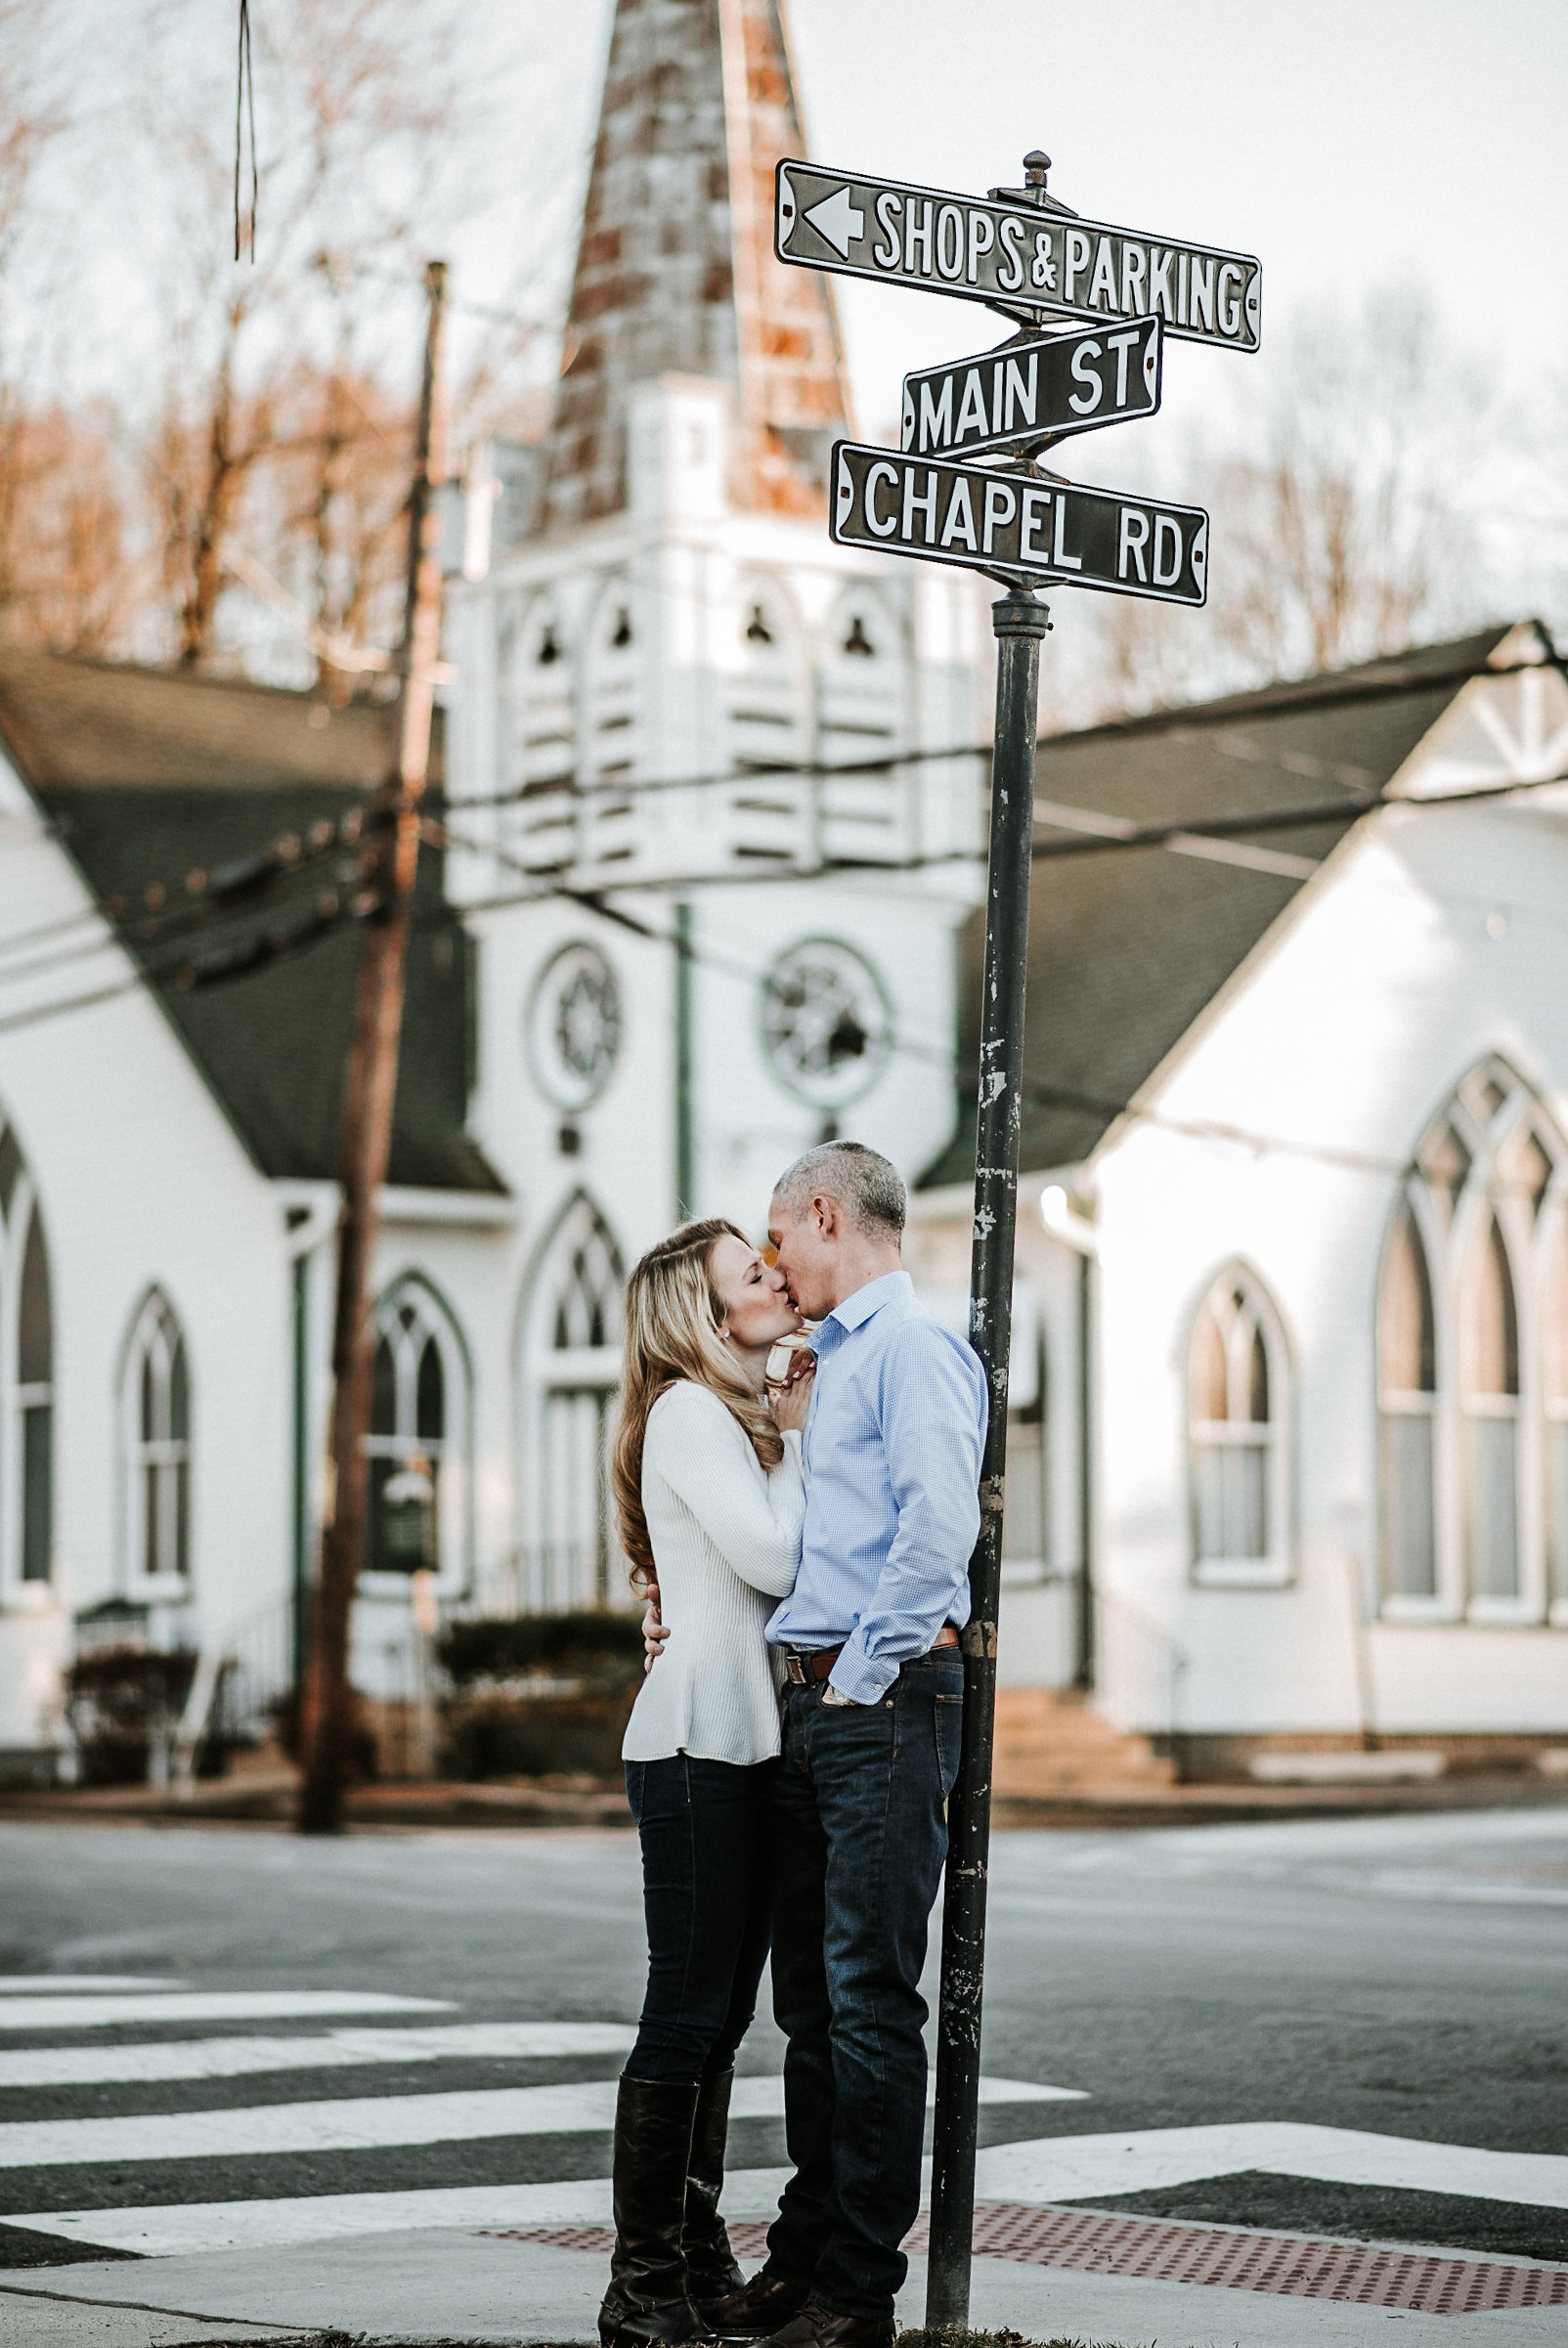 Engaged couple in front of chapel